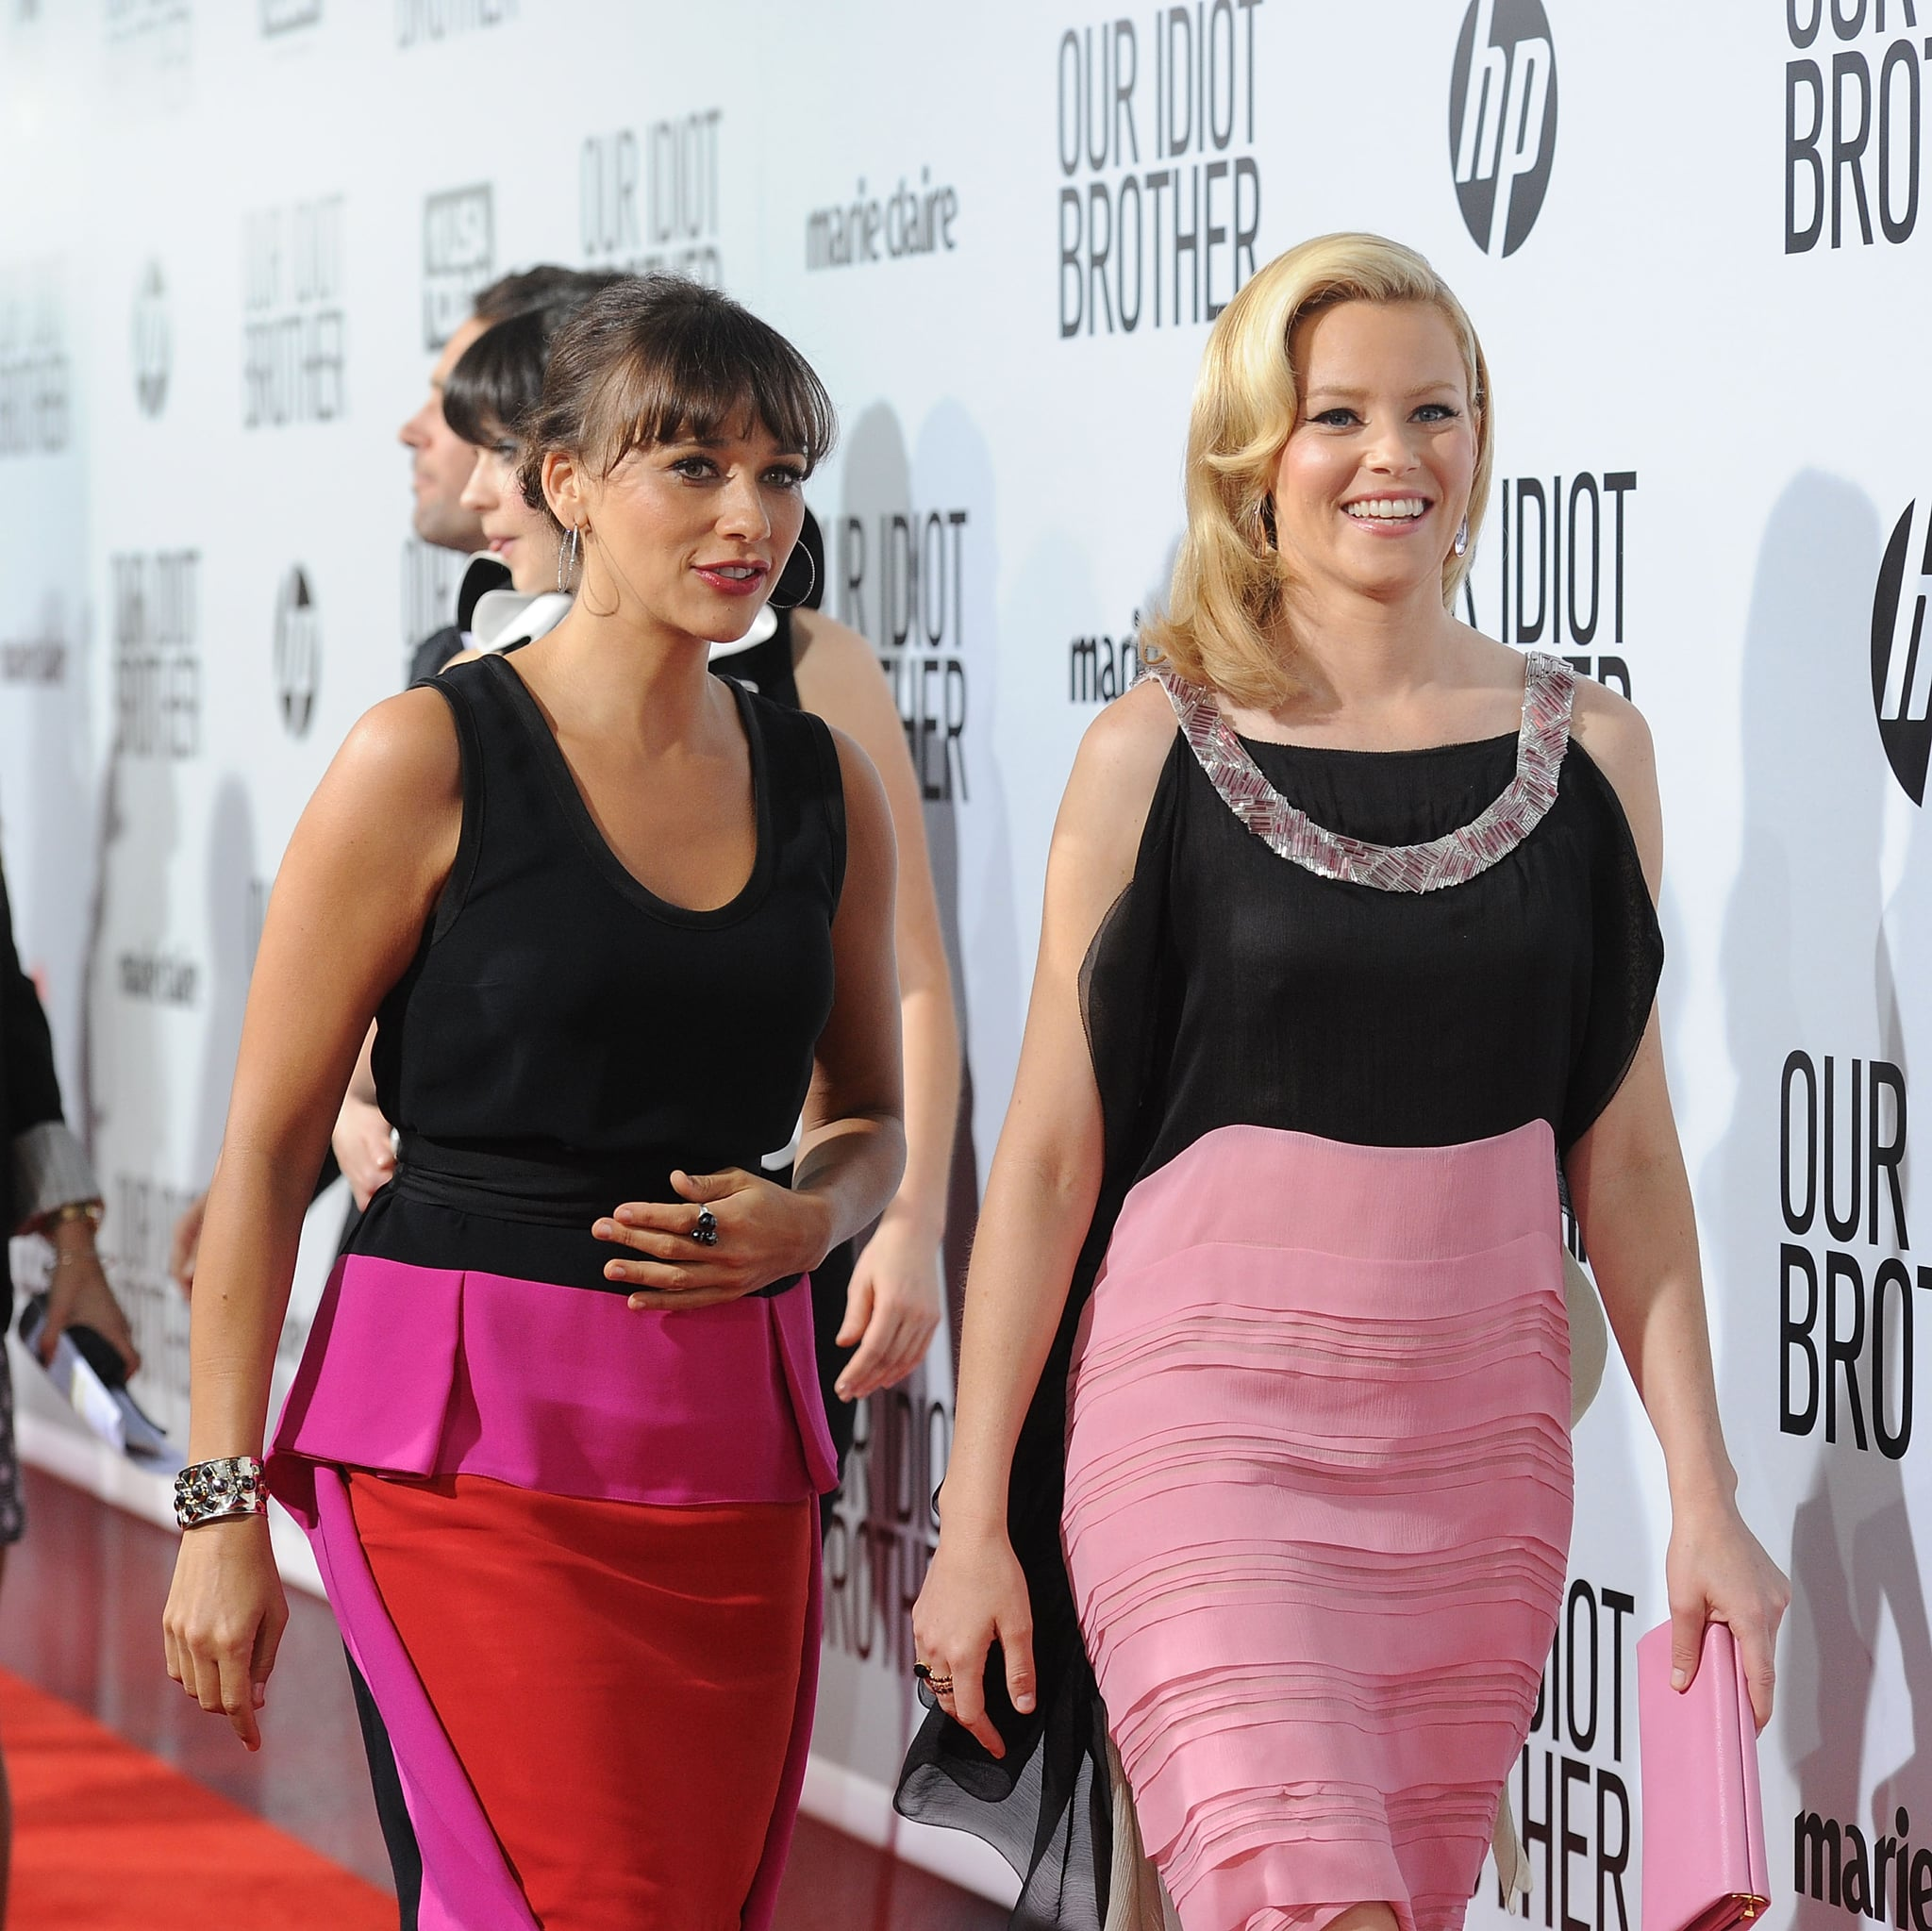 Rashida Jones and Elizabeth Banks